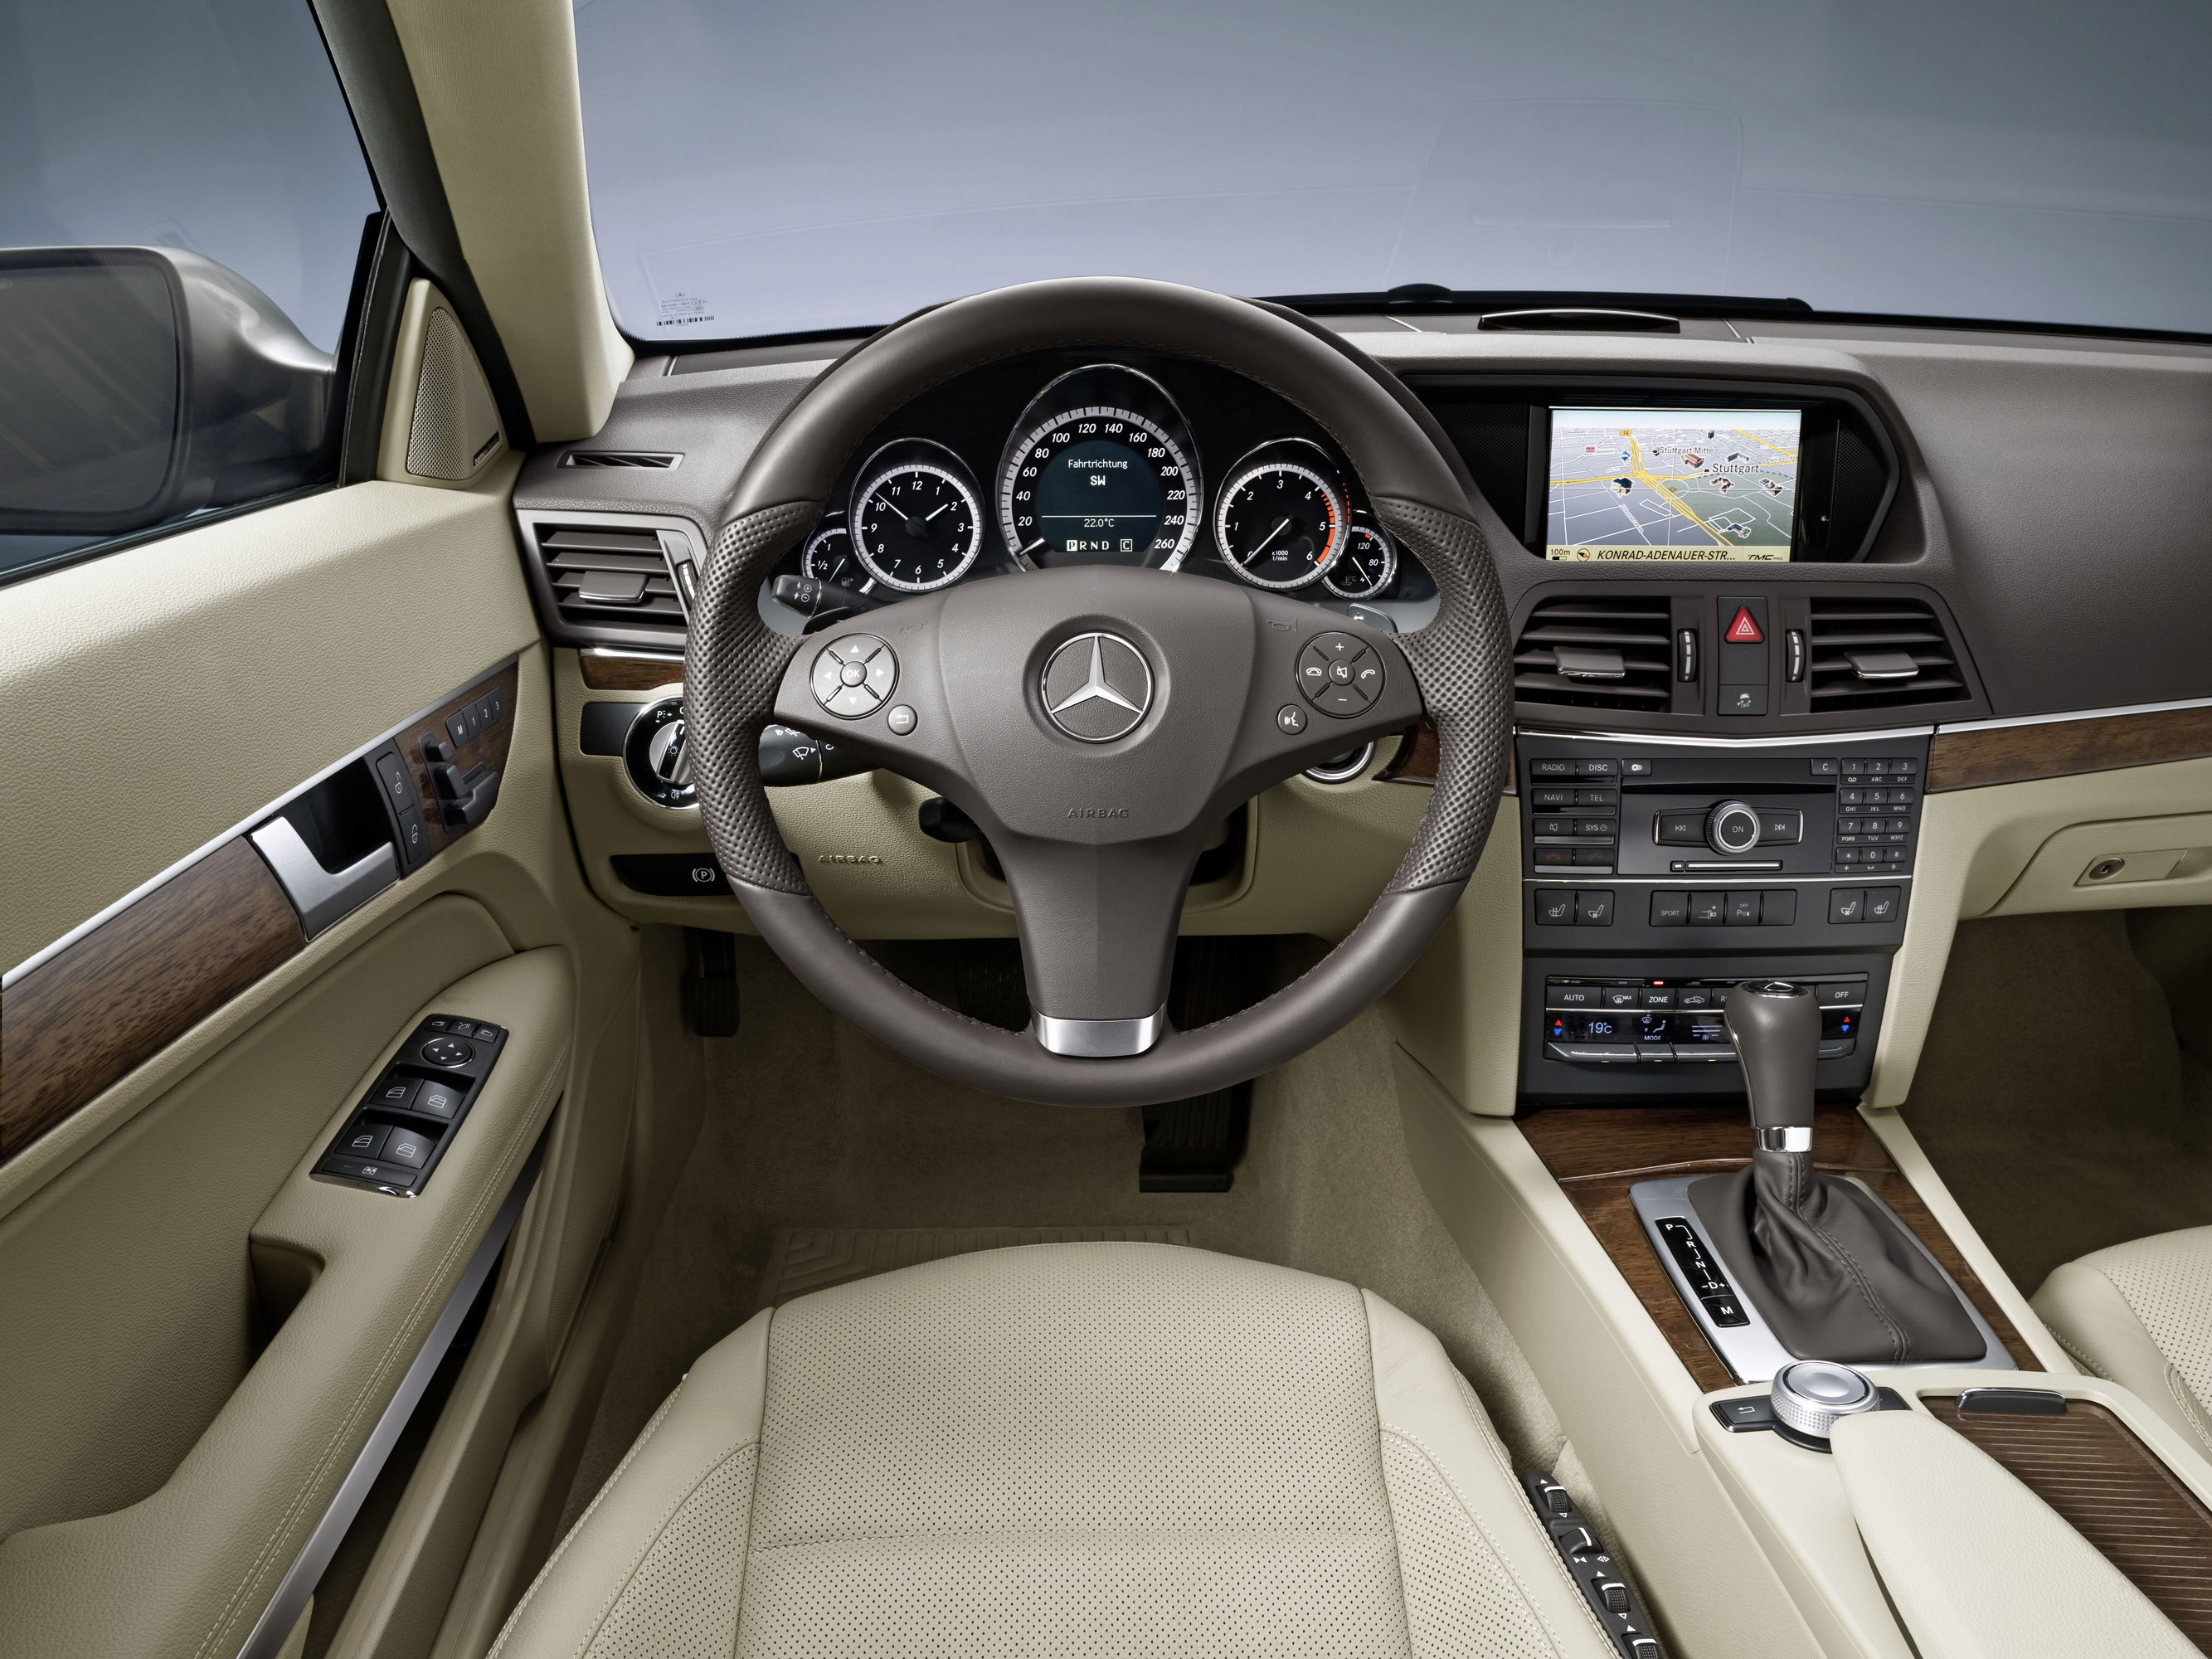 Mercedes-Benz E350 CDI Coupe - Picture 13088